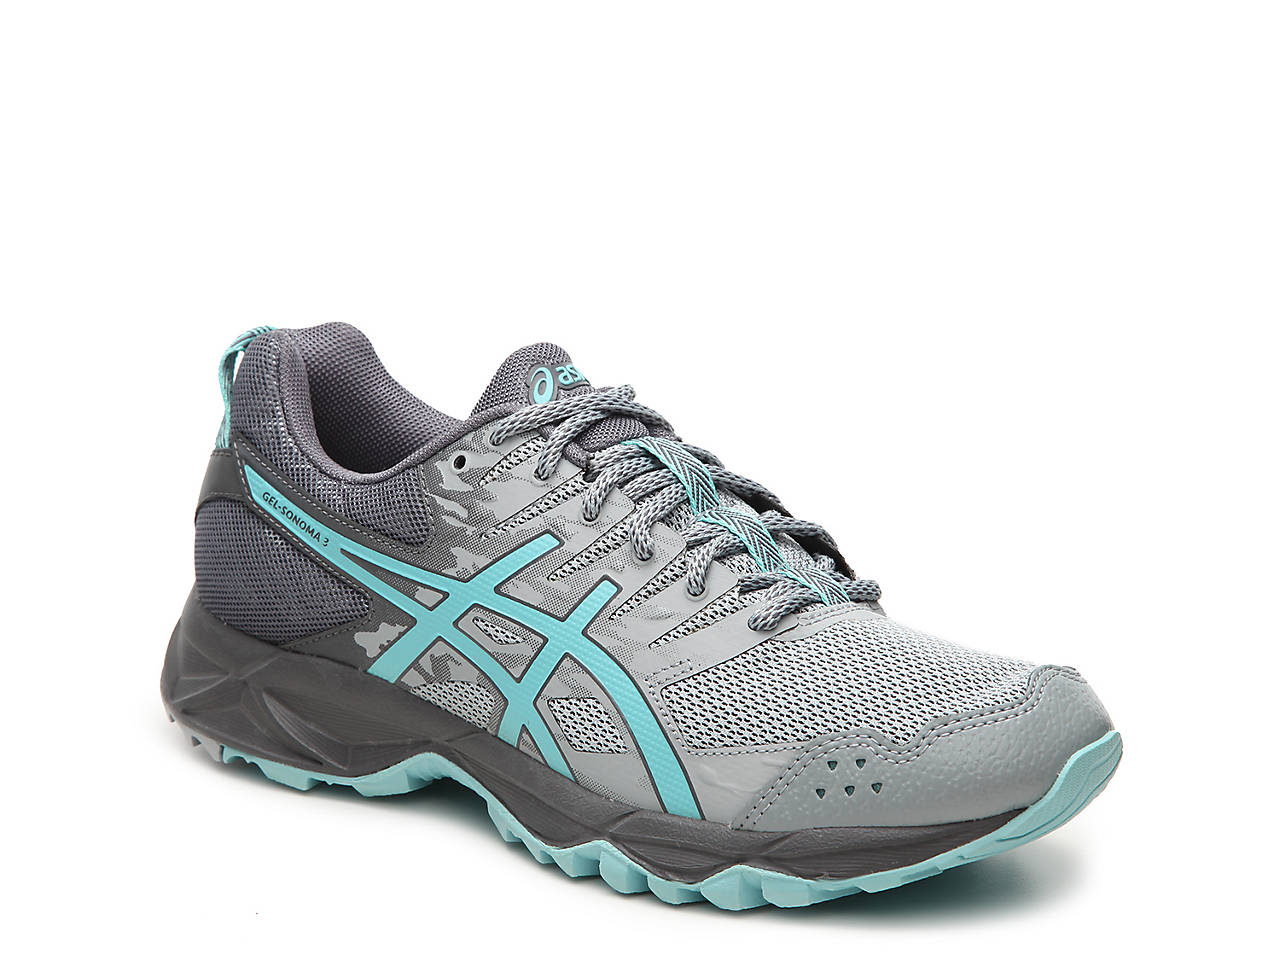 fff060f77007 ASICS GEL-Sonoma 3 Trail Running Shoe - Women s Women s Shoes